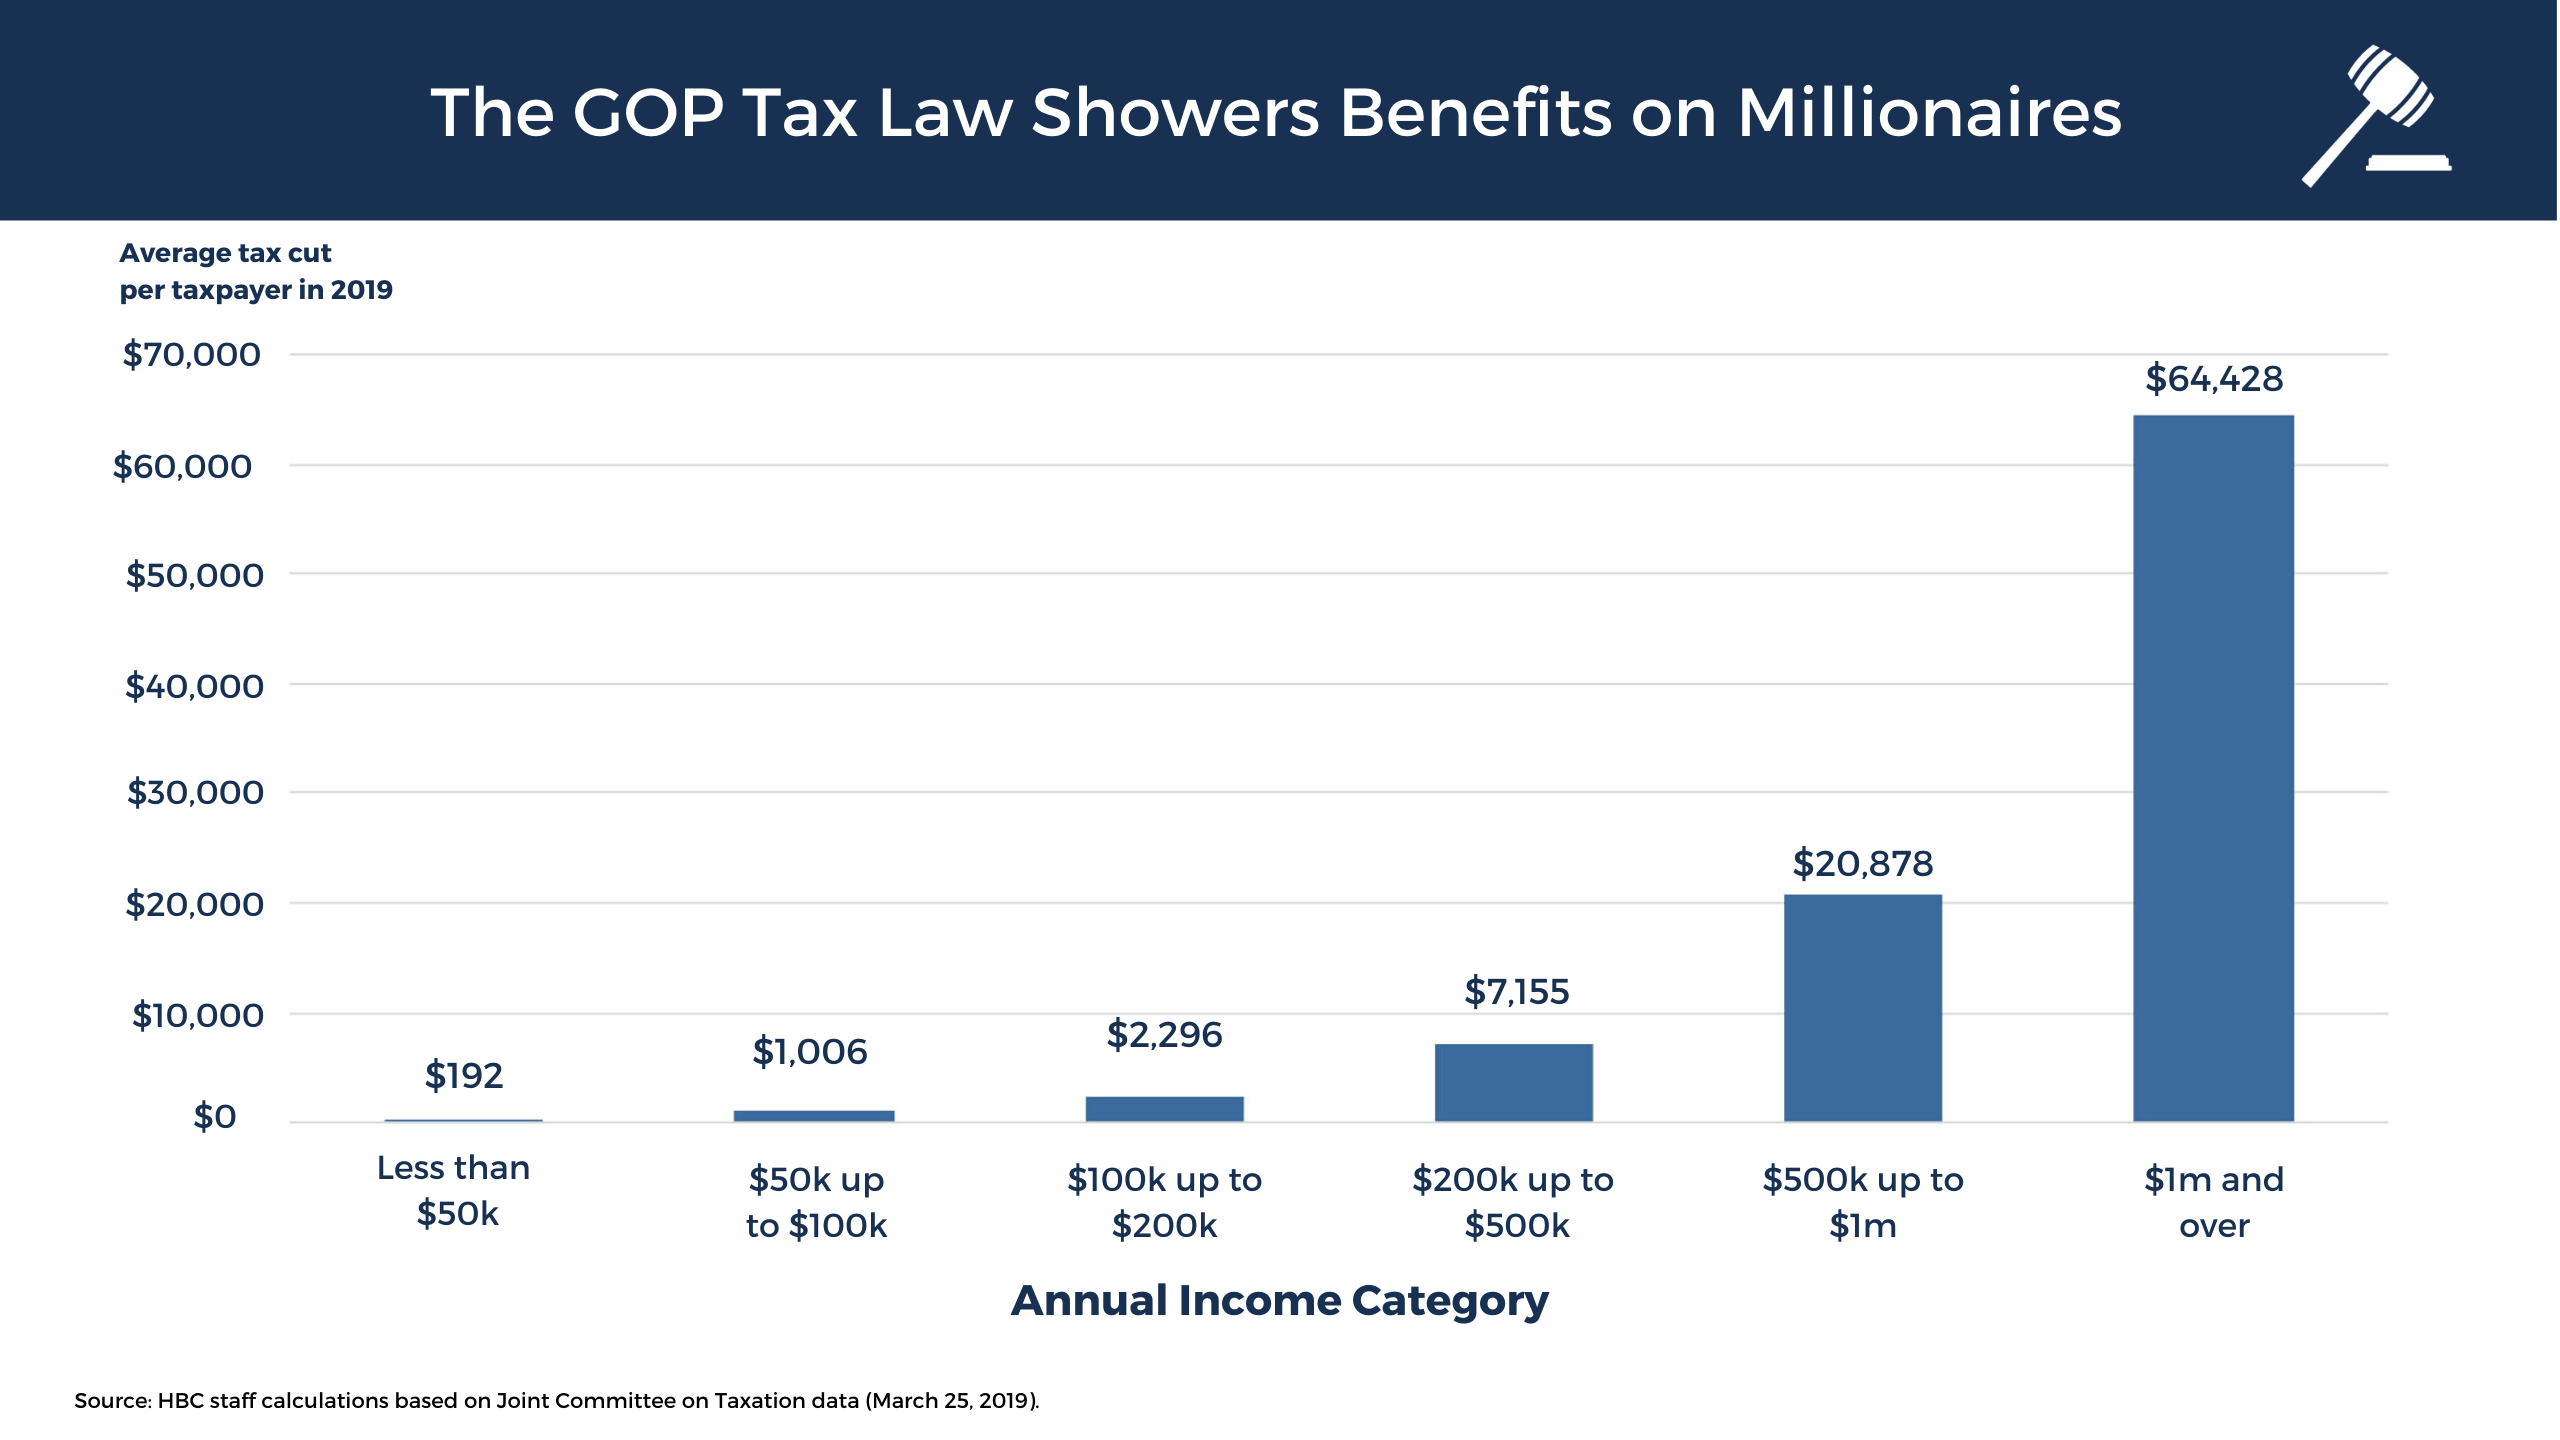 The Republican Tax Law showered unnecessary benefits on millionaires